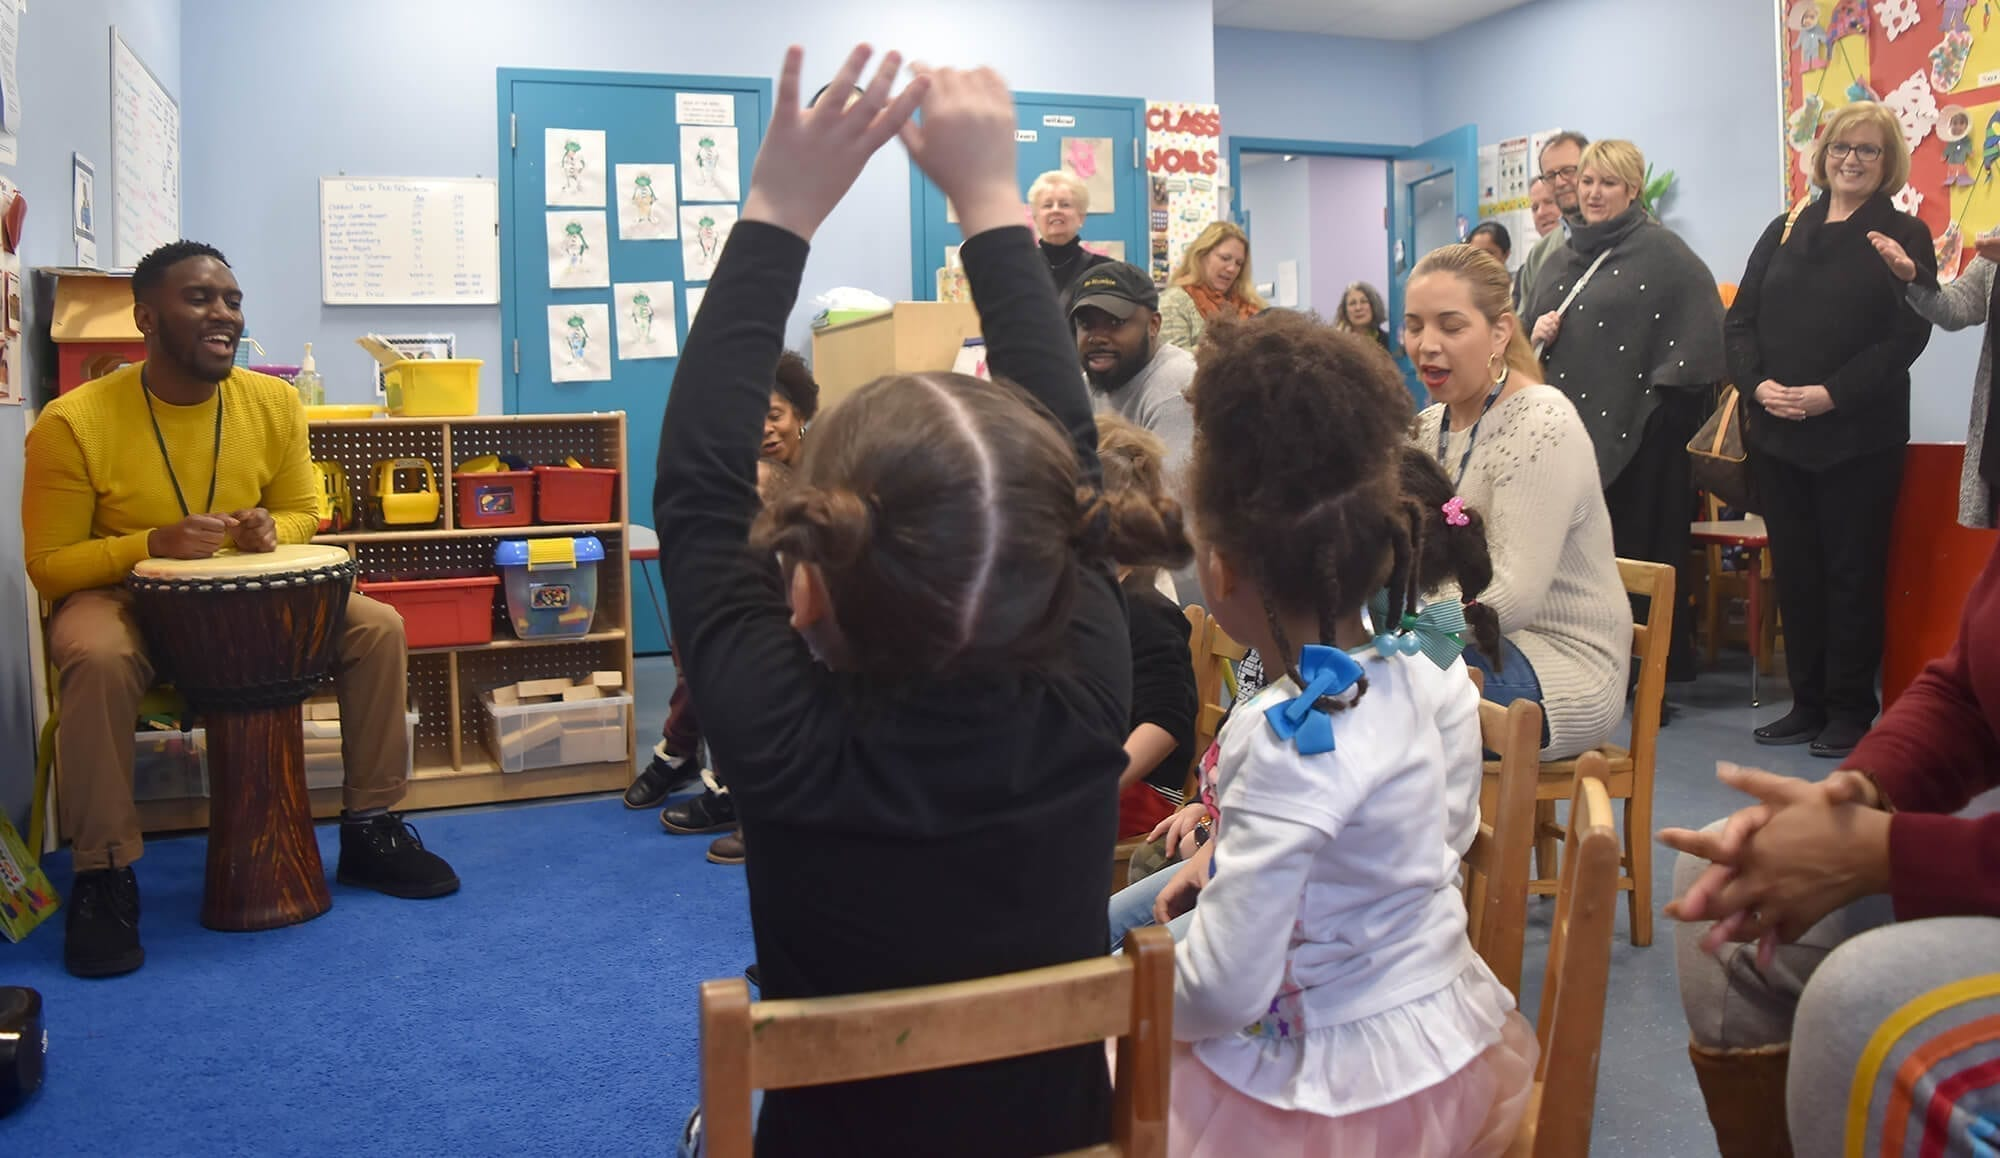 Children engage in a music therapy session at Esther Ashkenas Central Park Early Learning Center